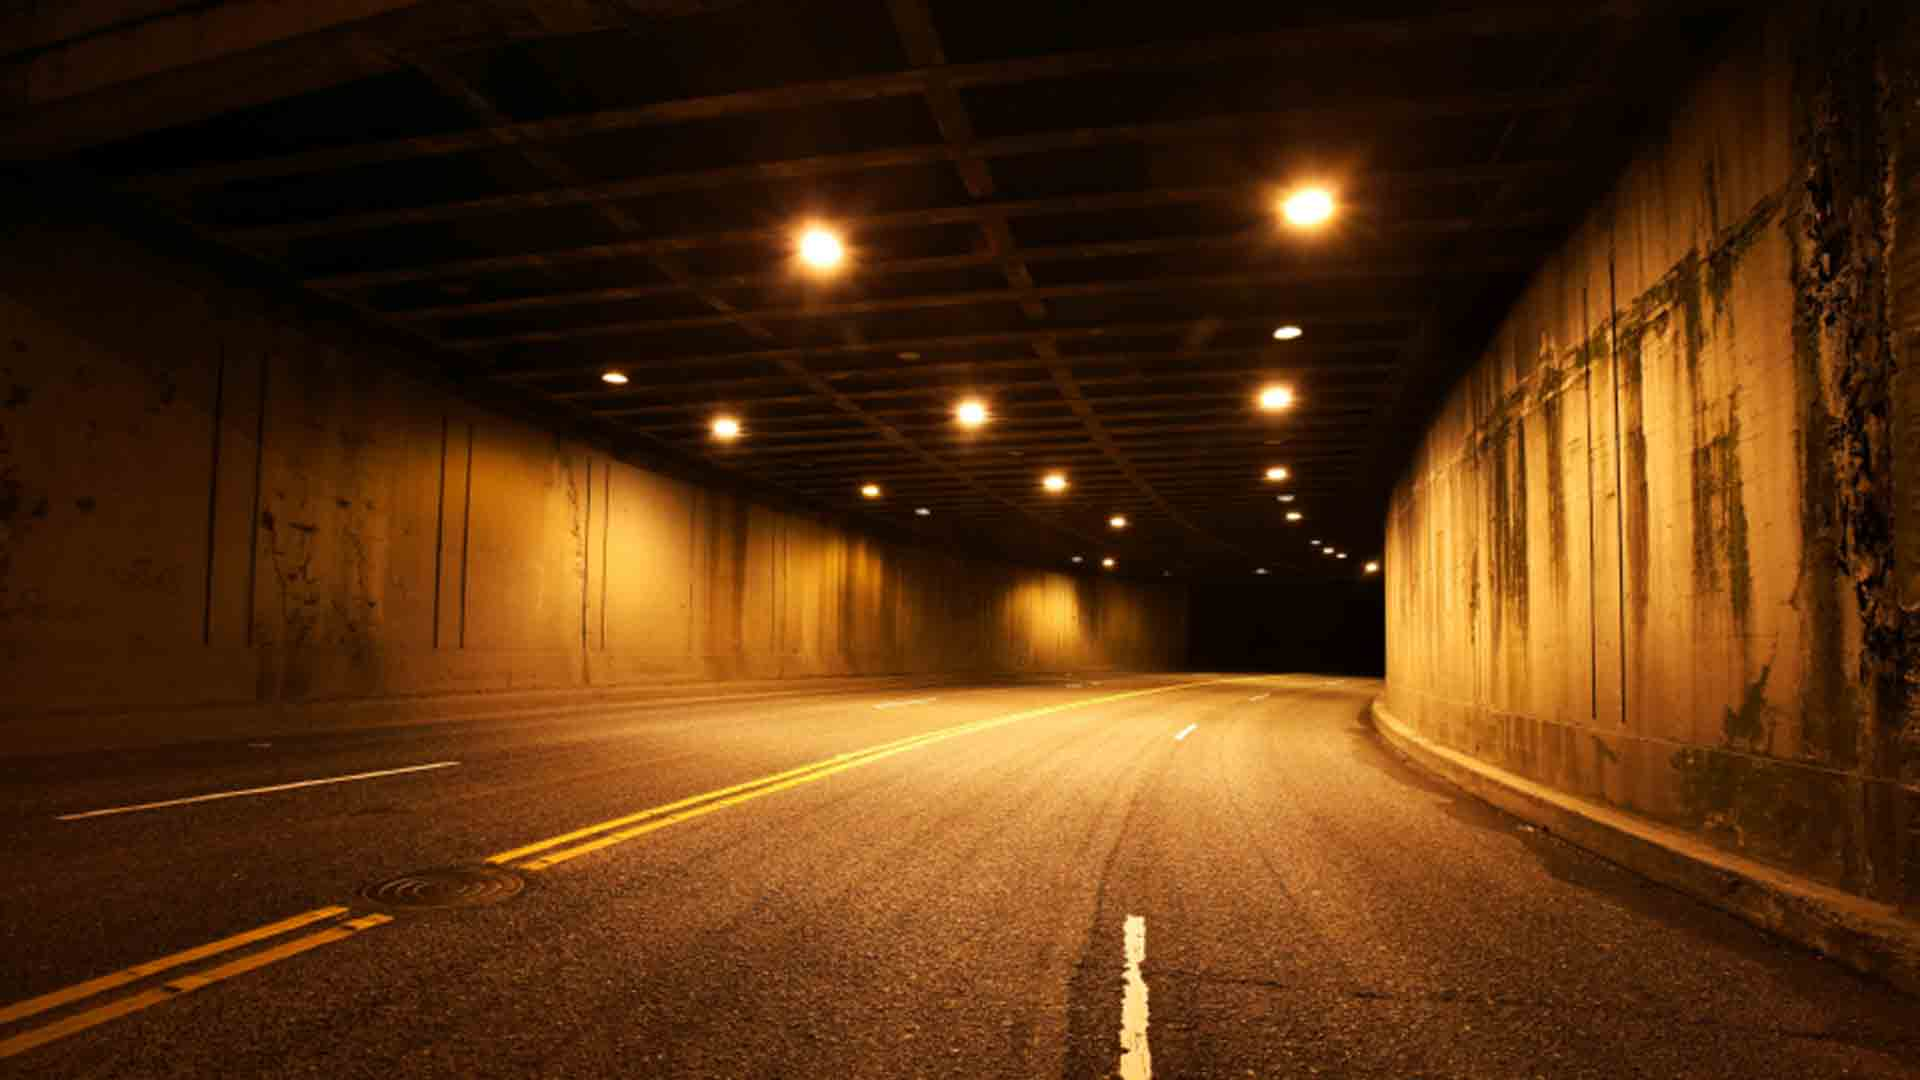 Image: http://www.desktopwallpaperhd.net/wallpapers/2/e/tunnel-chatting-video-house-skins-wallpaper-road-26766.jpg